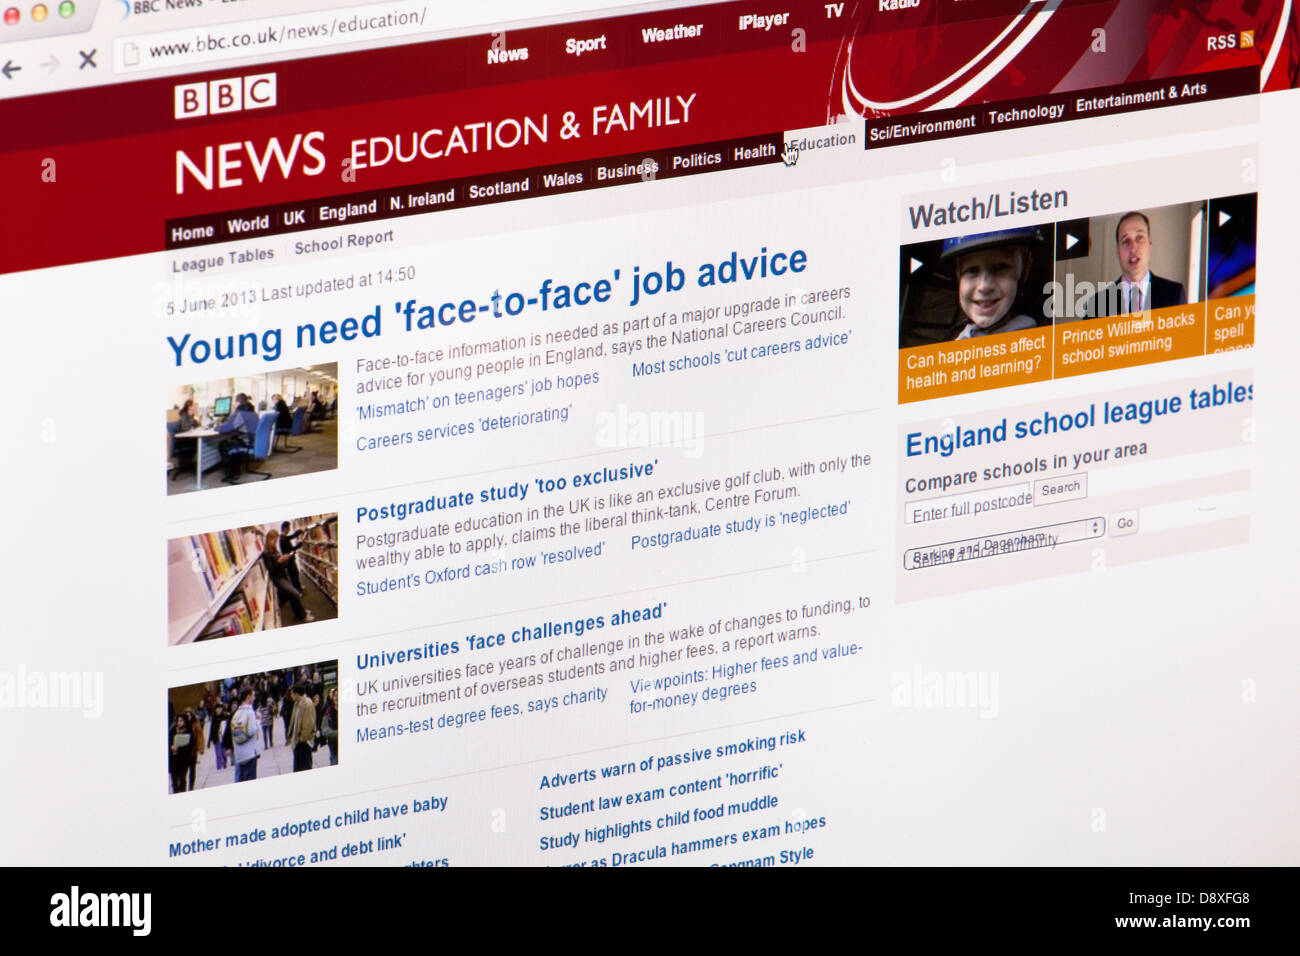 BBC News Education and family home page Website or web page on a laptop screen or computer monitor - Stock Image